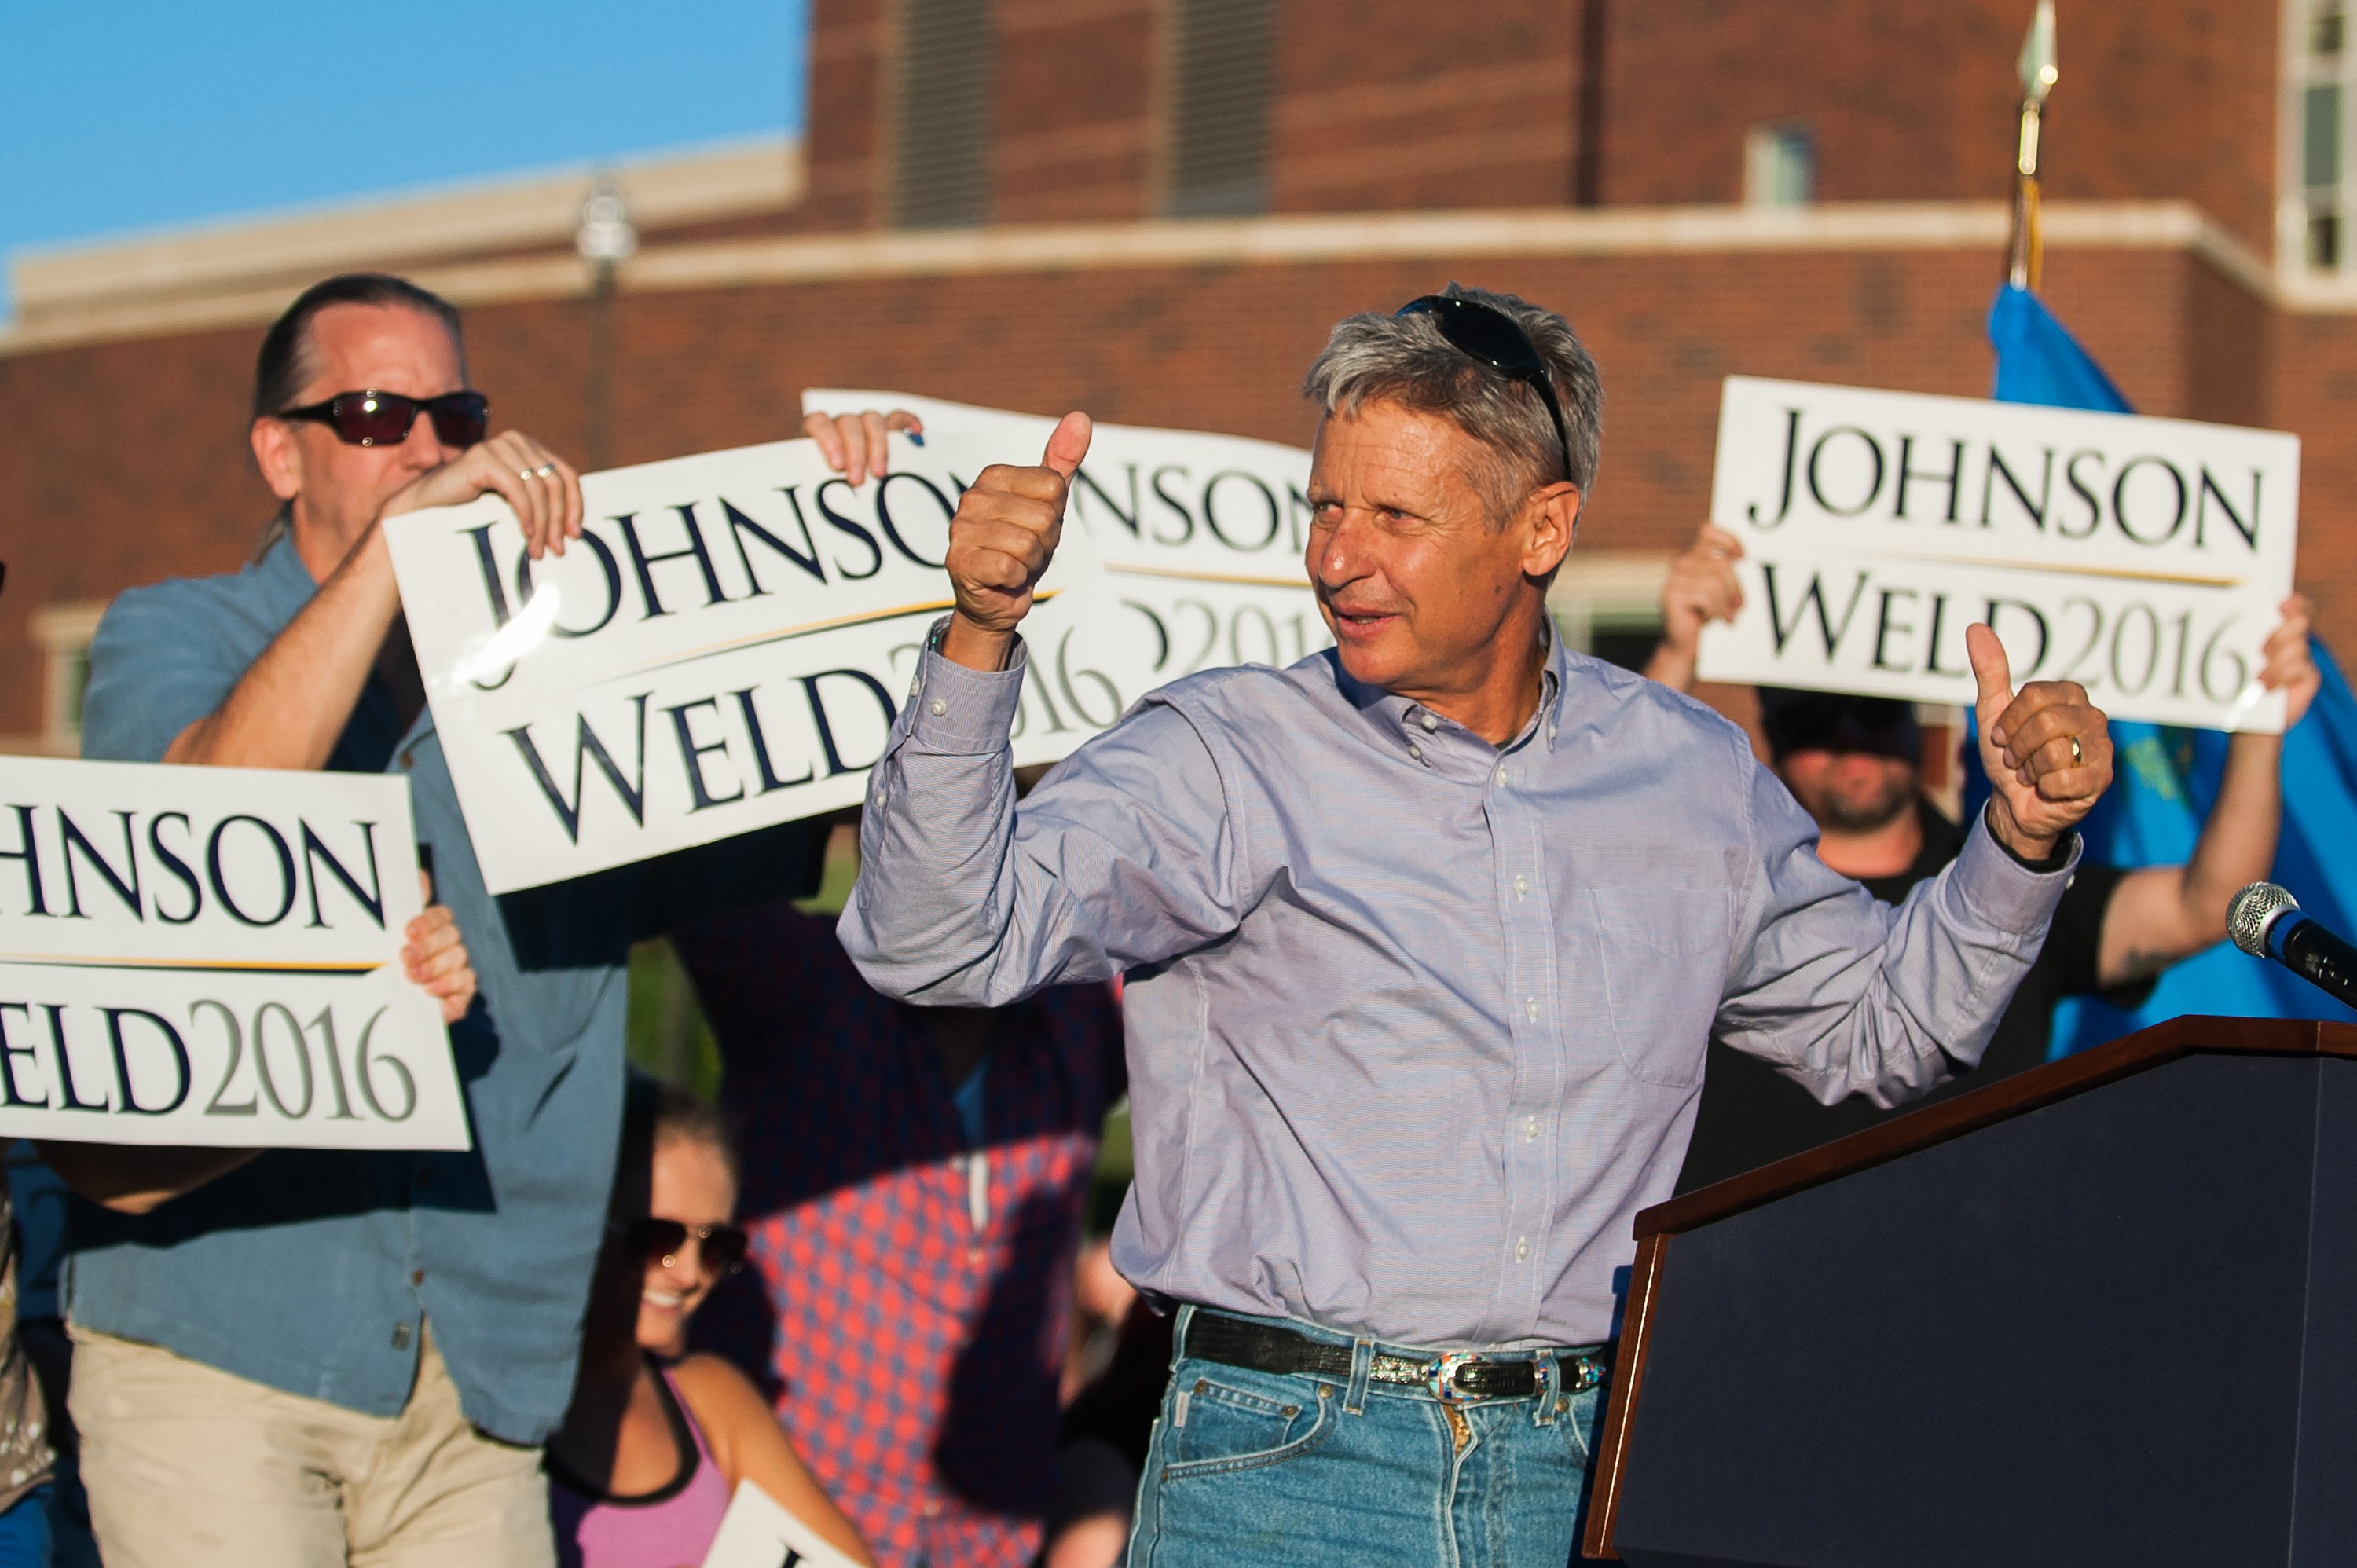 FILE--Gary Johnson, the Libertarian presidential candidate, speaks at a rally in Reno, Nev., Aug. 5, 2016. JohnsonÕs support in the polls is a little shy of 10 percent, suggesting heÕll get that chance. Yet the former Republican governor of New Mexico is hoping to have an impact, if only by hastening the fall of his old party and the rise of his new one as a national political force. (Kevin Clifford/The New York Times)